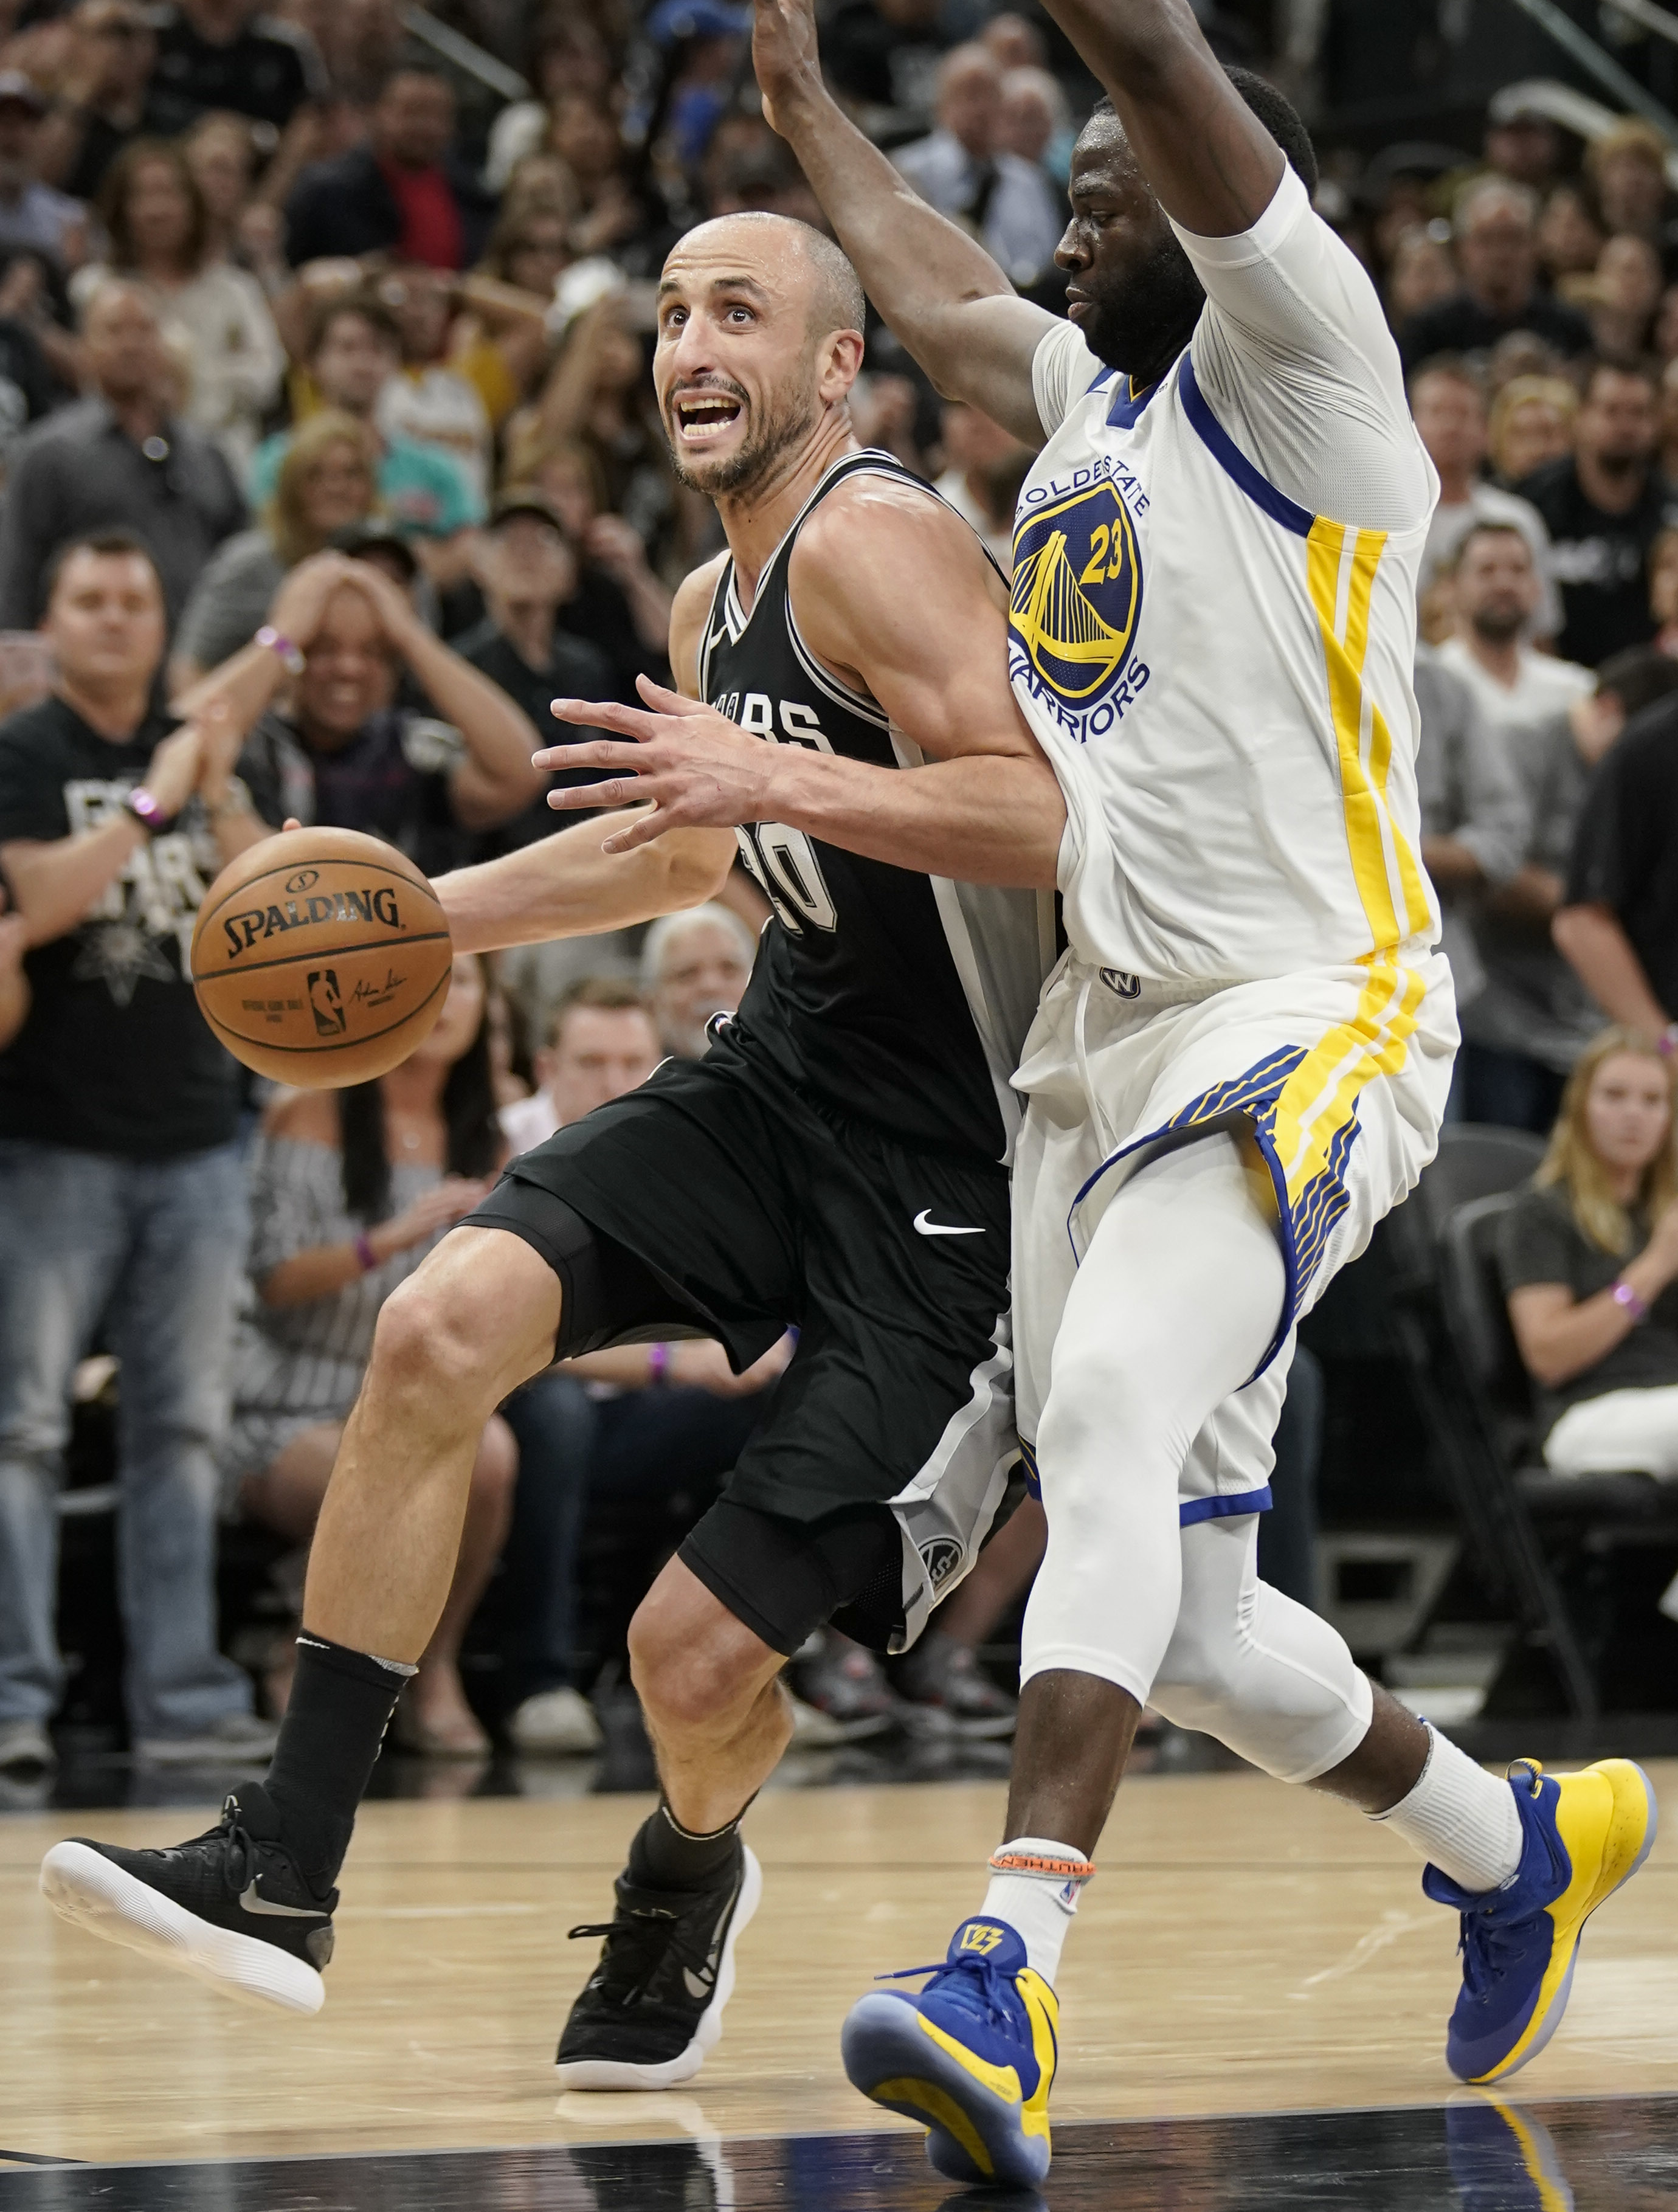 San Antonio Spurs' Manu Ginobili, left, drives against Golden State Warriors' Draymond Green during the second half of Game 4 of a first-round NBA basketball playoff series in San Antonio, Sunday, April 22, 2018, in San Antonio. San Antonio won 103-90. (AP Photo/Darren Abate)